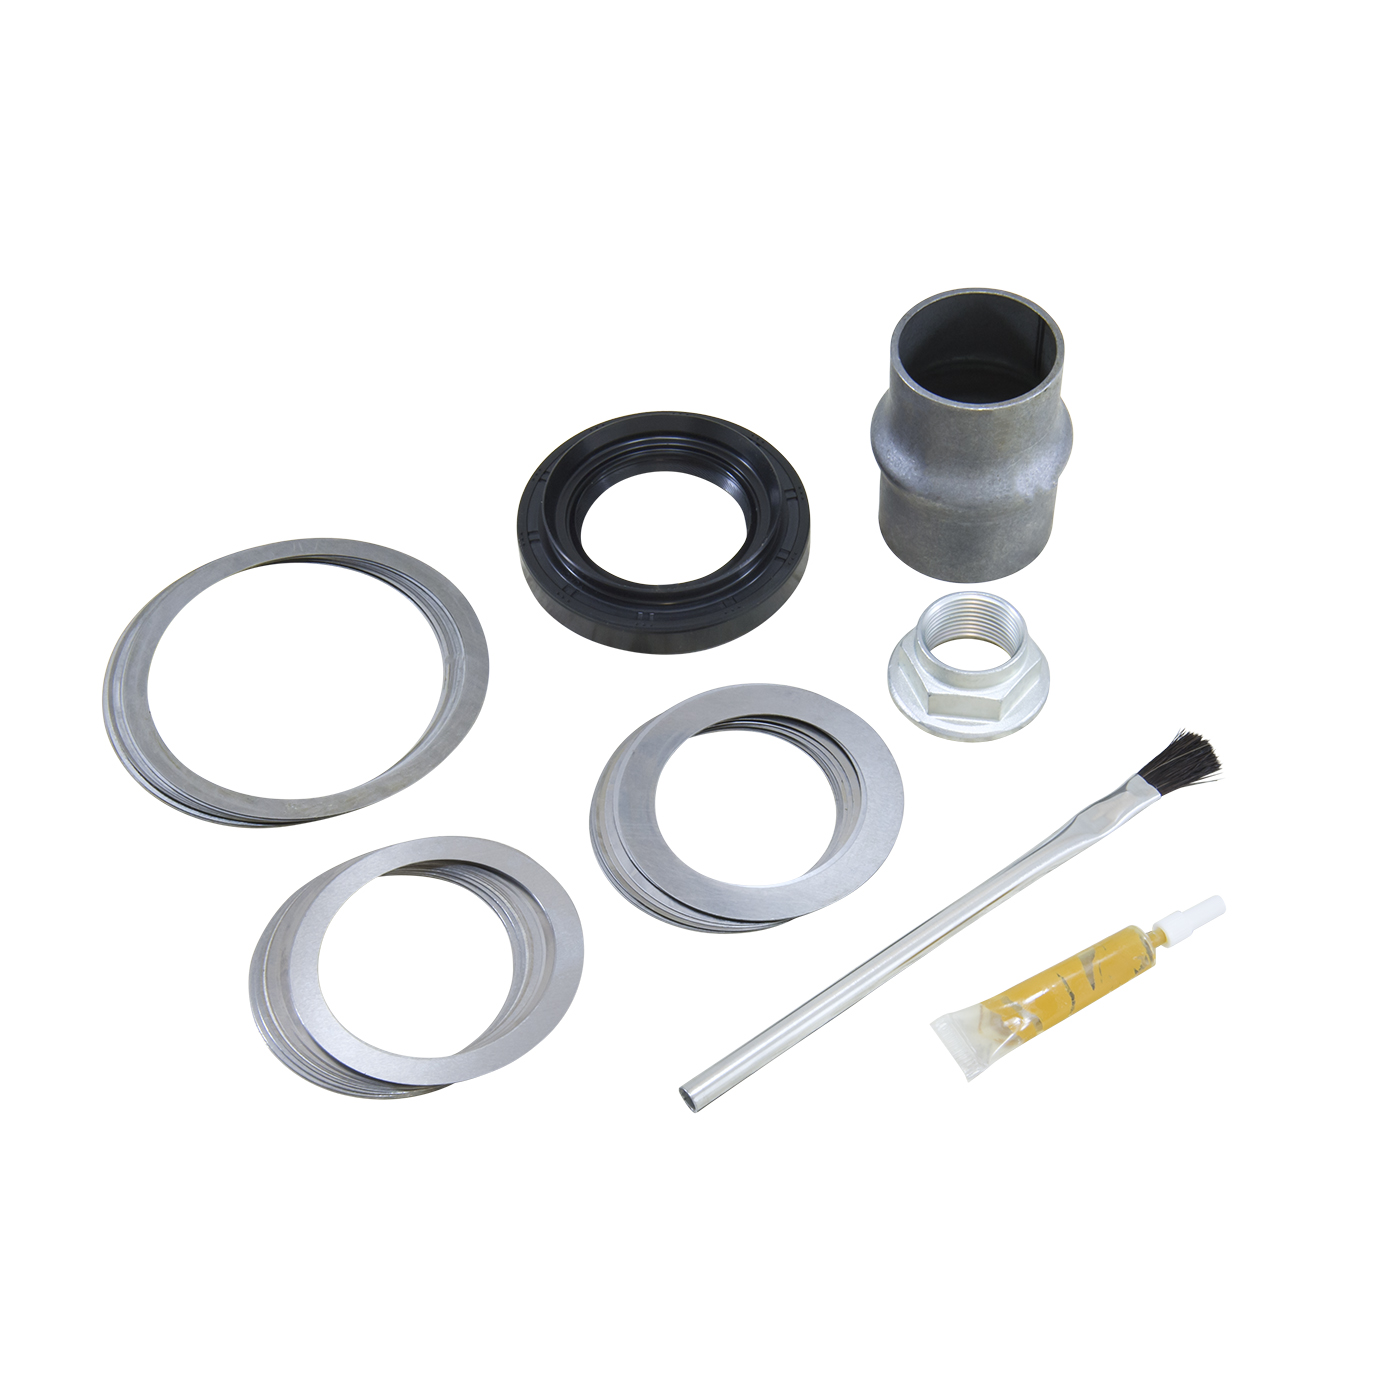 MK T100 - Yukon Minor install kit for Toyota T100 and Tacoma rear differential